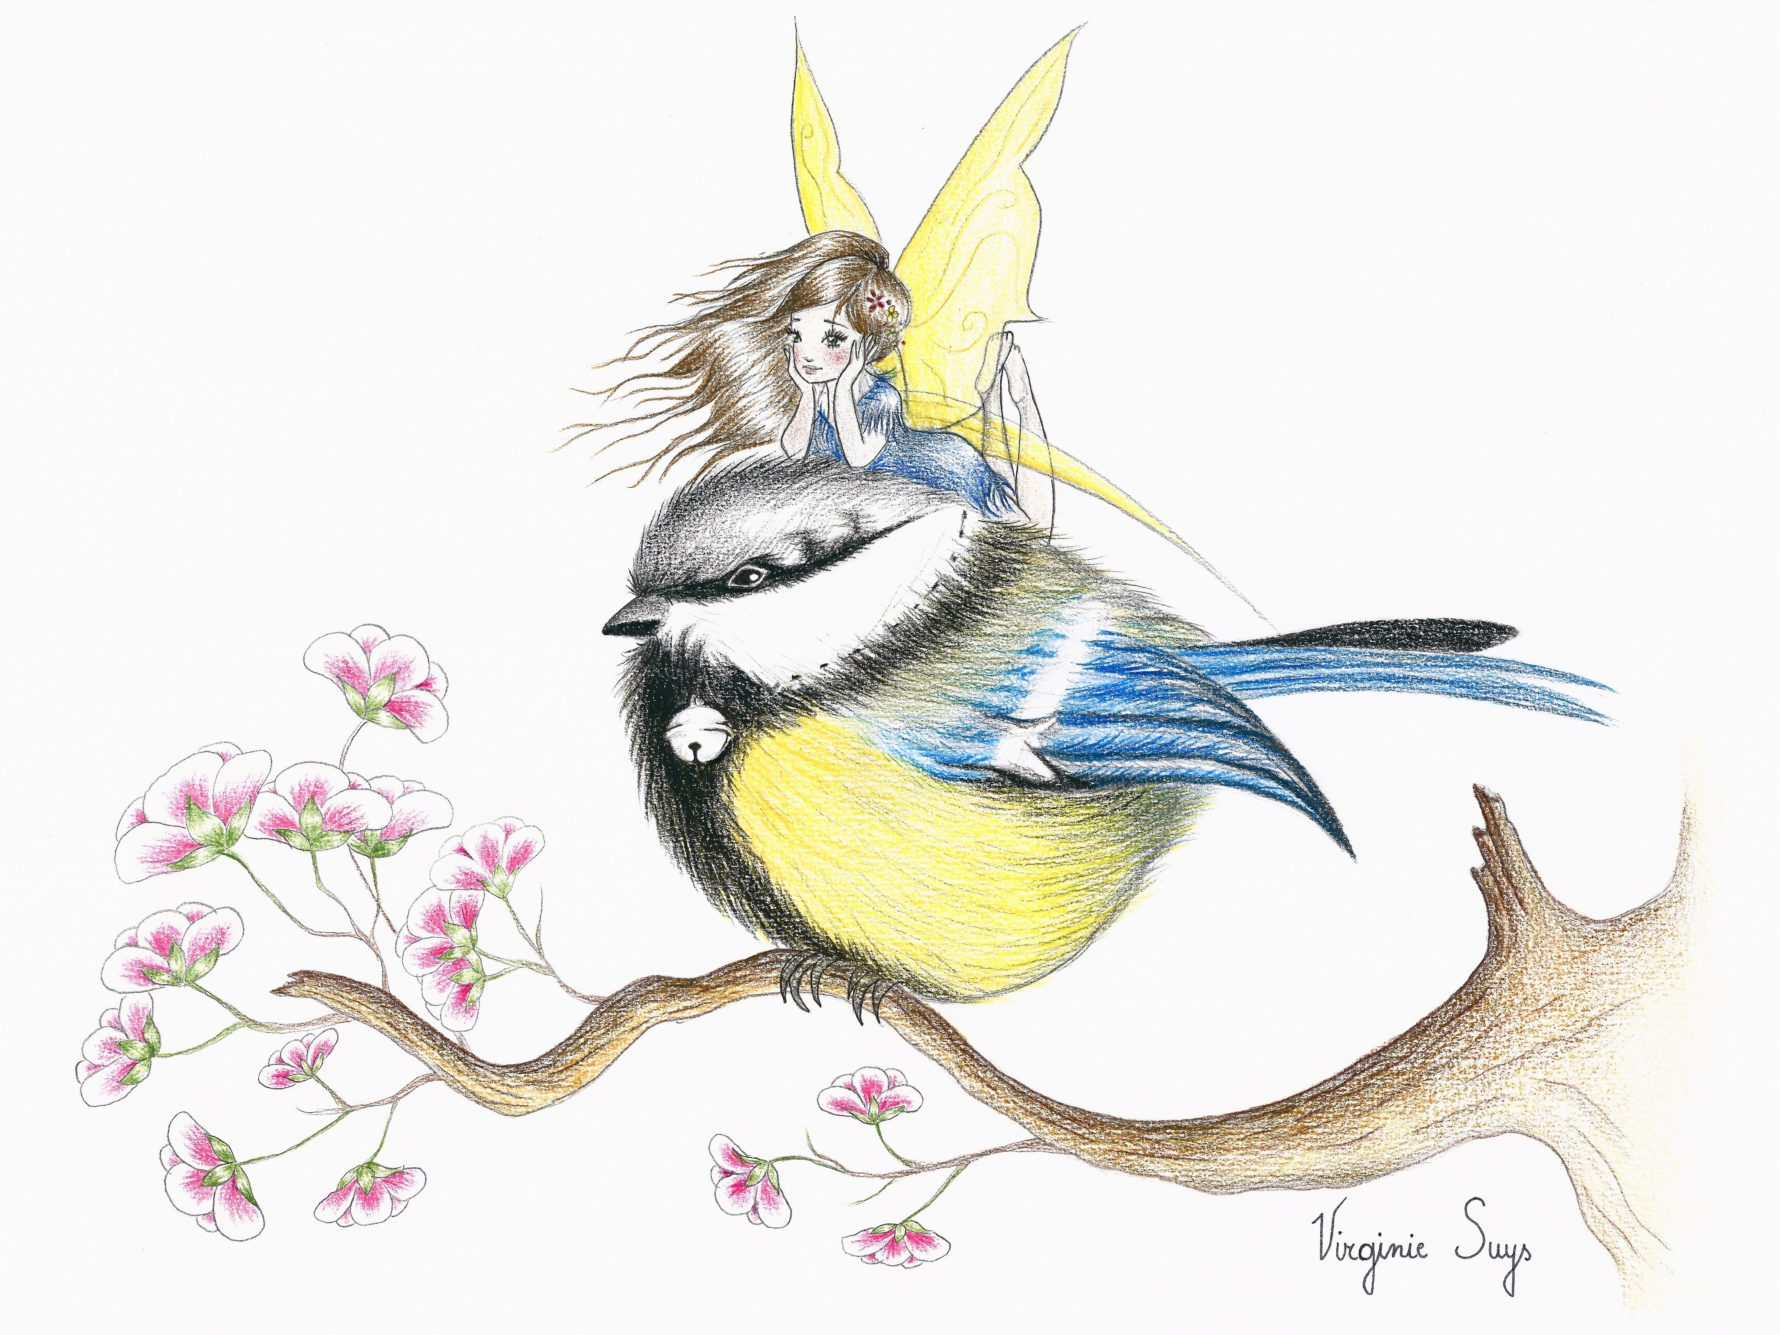 Virginie Suys Little blue yellow bird & fairy illustration